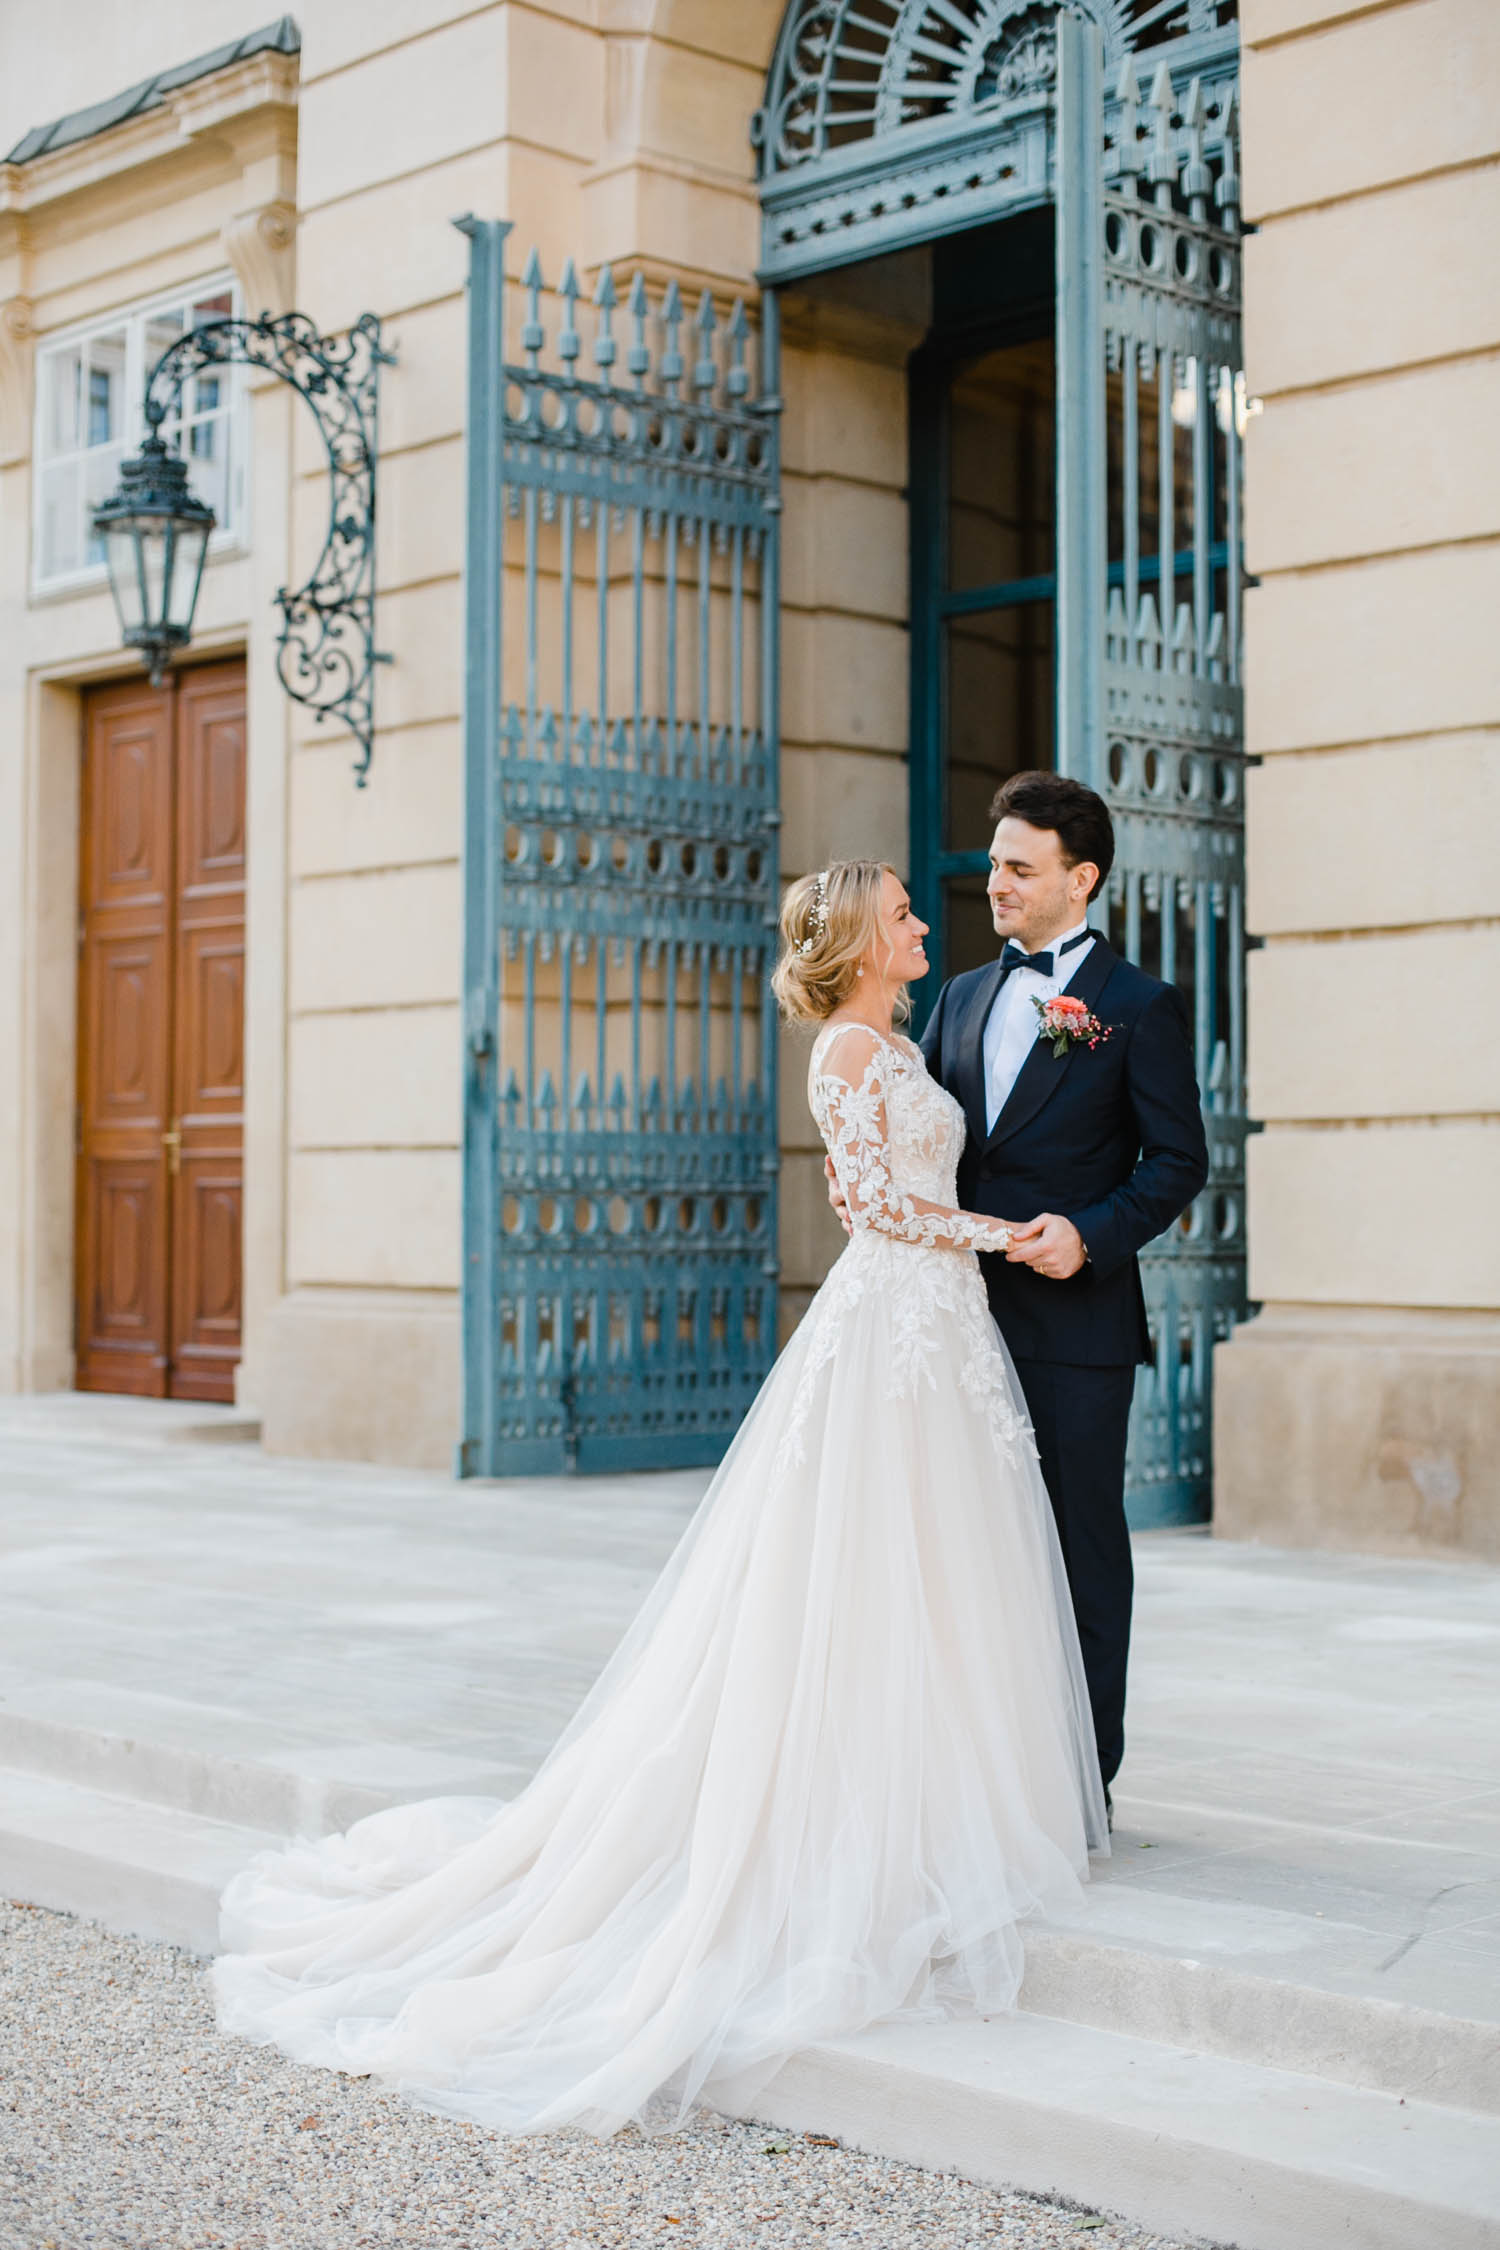 Palais Liechtenstein Wedding Bride And Groom Photo By Blue Gates